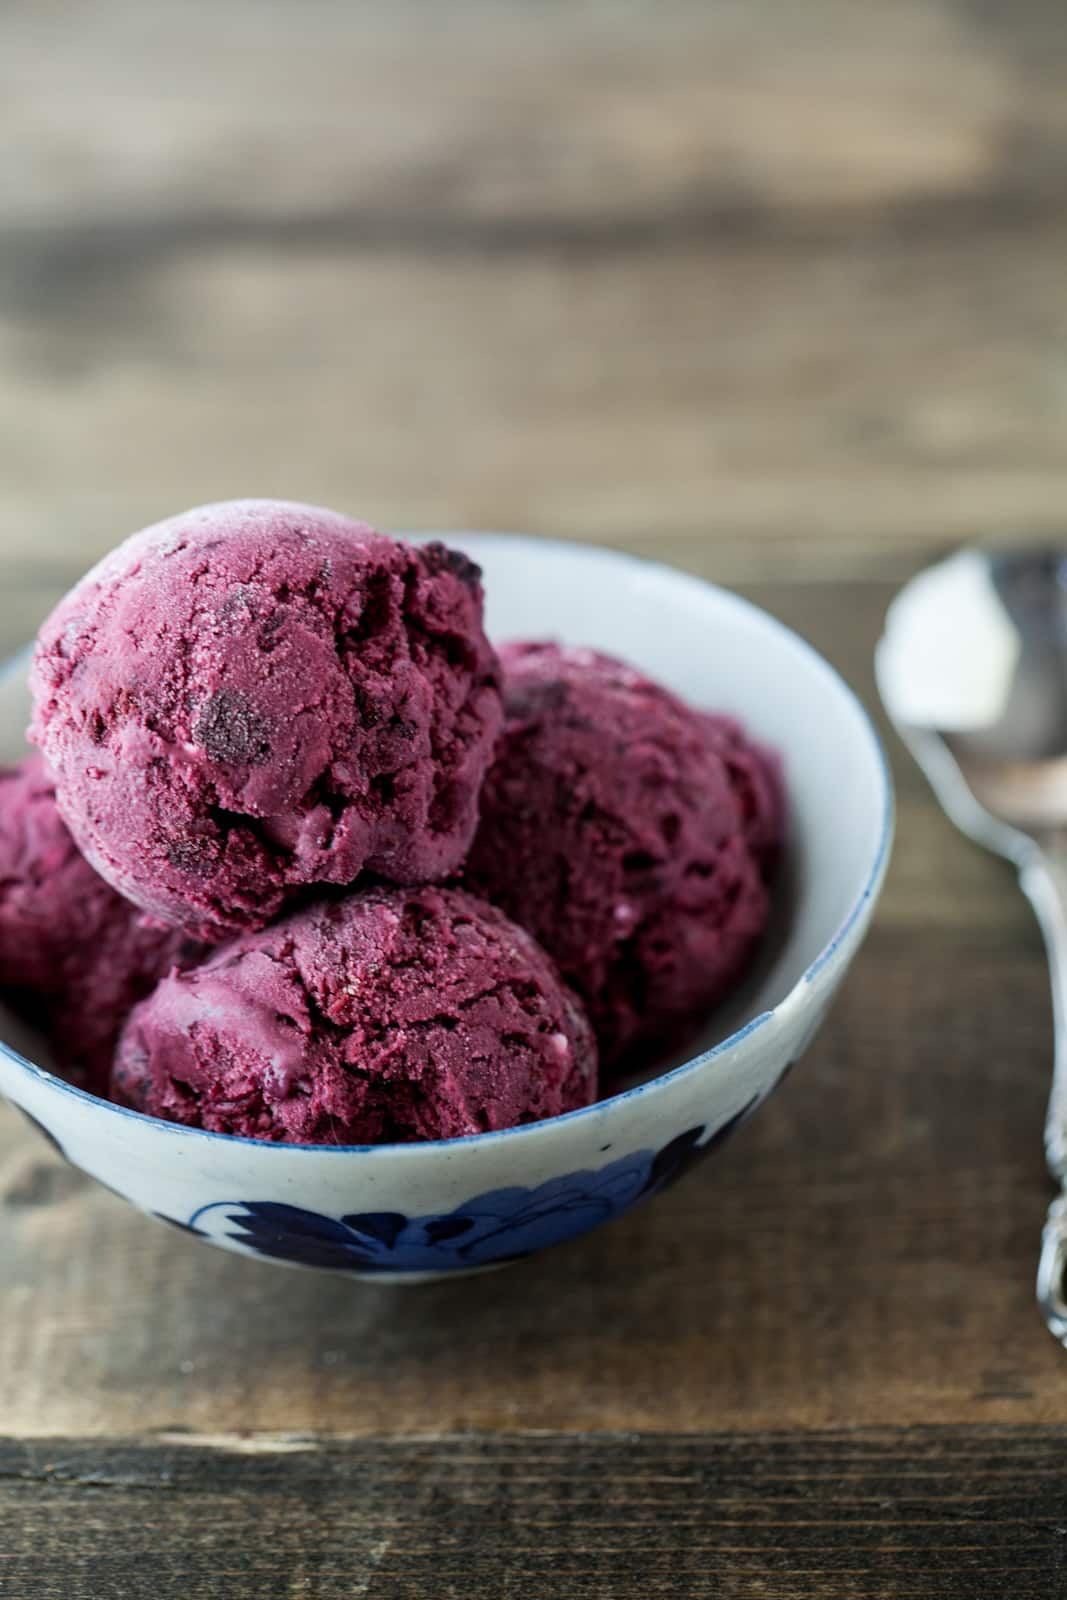 Black Raspberry and Vanilla Bean Ice Cream